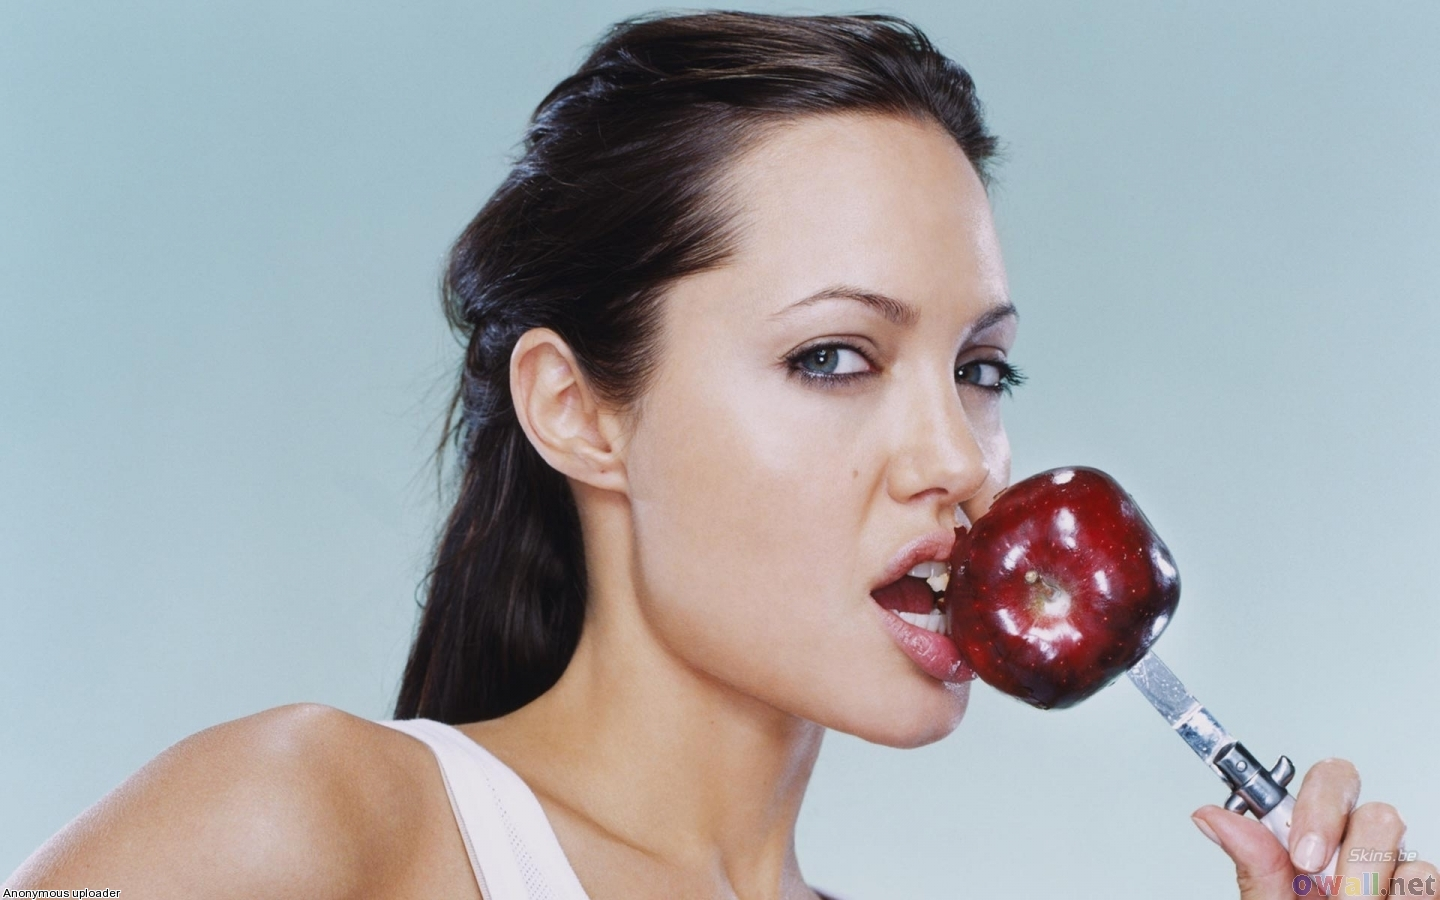 http://3.bp.blogspot.com/-cD03hruLlbk/T5WAaOwzPFI/AAAAAAAAFtA/Dgd0UJJTBnI/s1600/angelina_jolie_eating_an_apple_1440x900.jpg